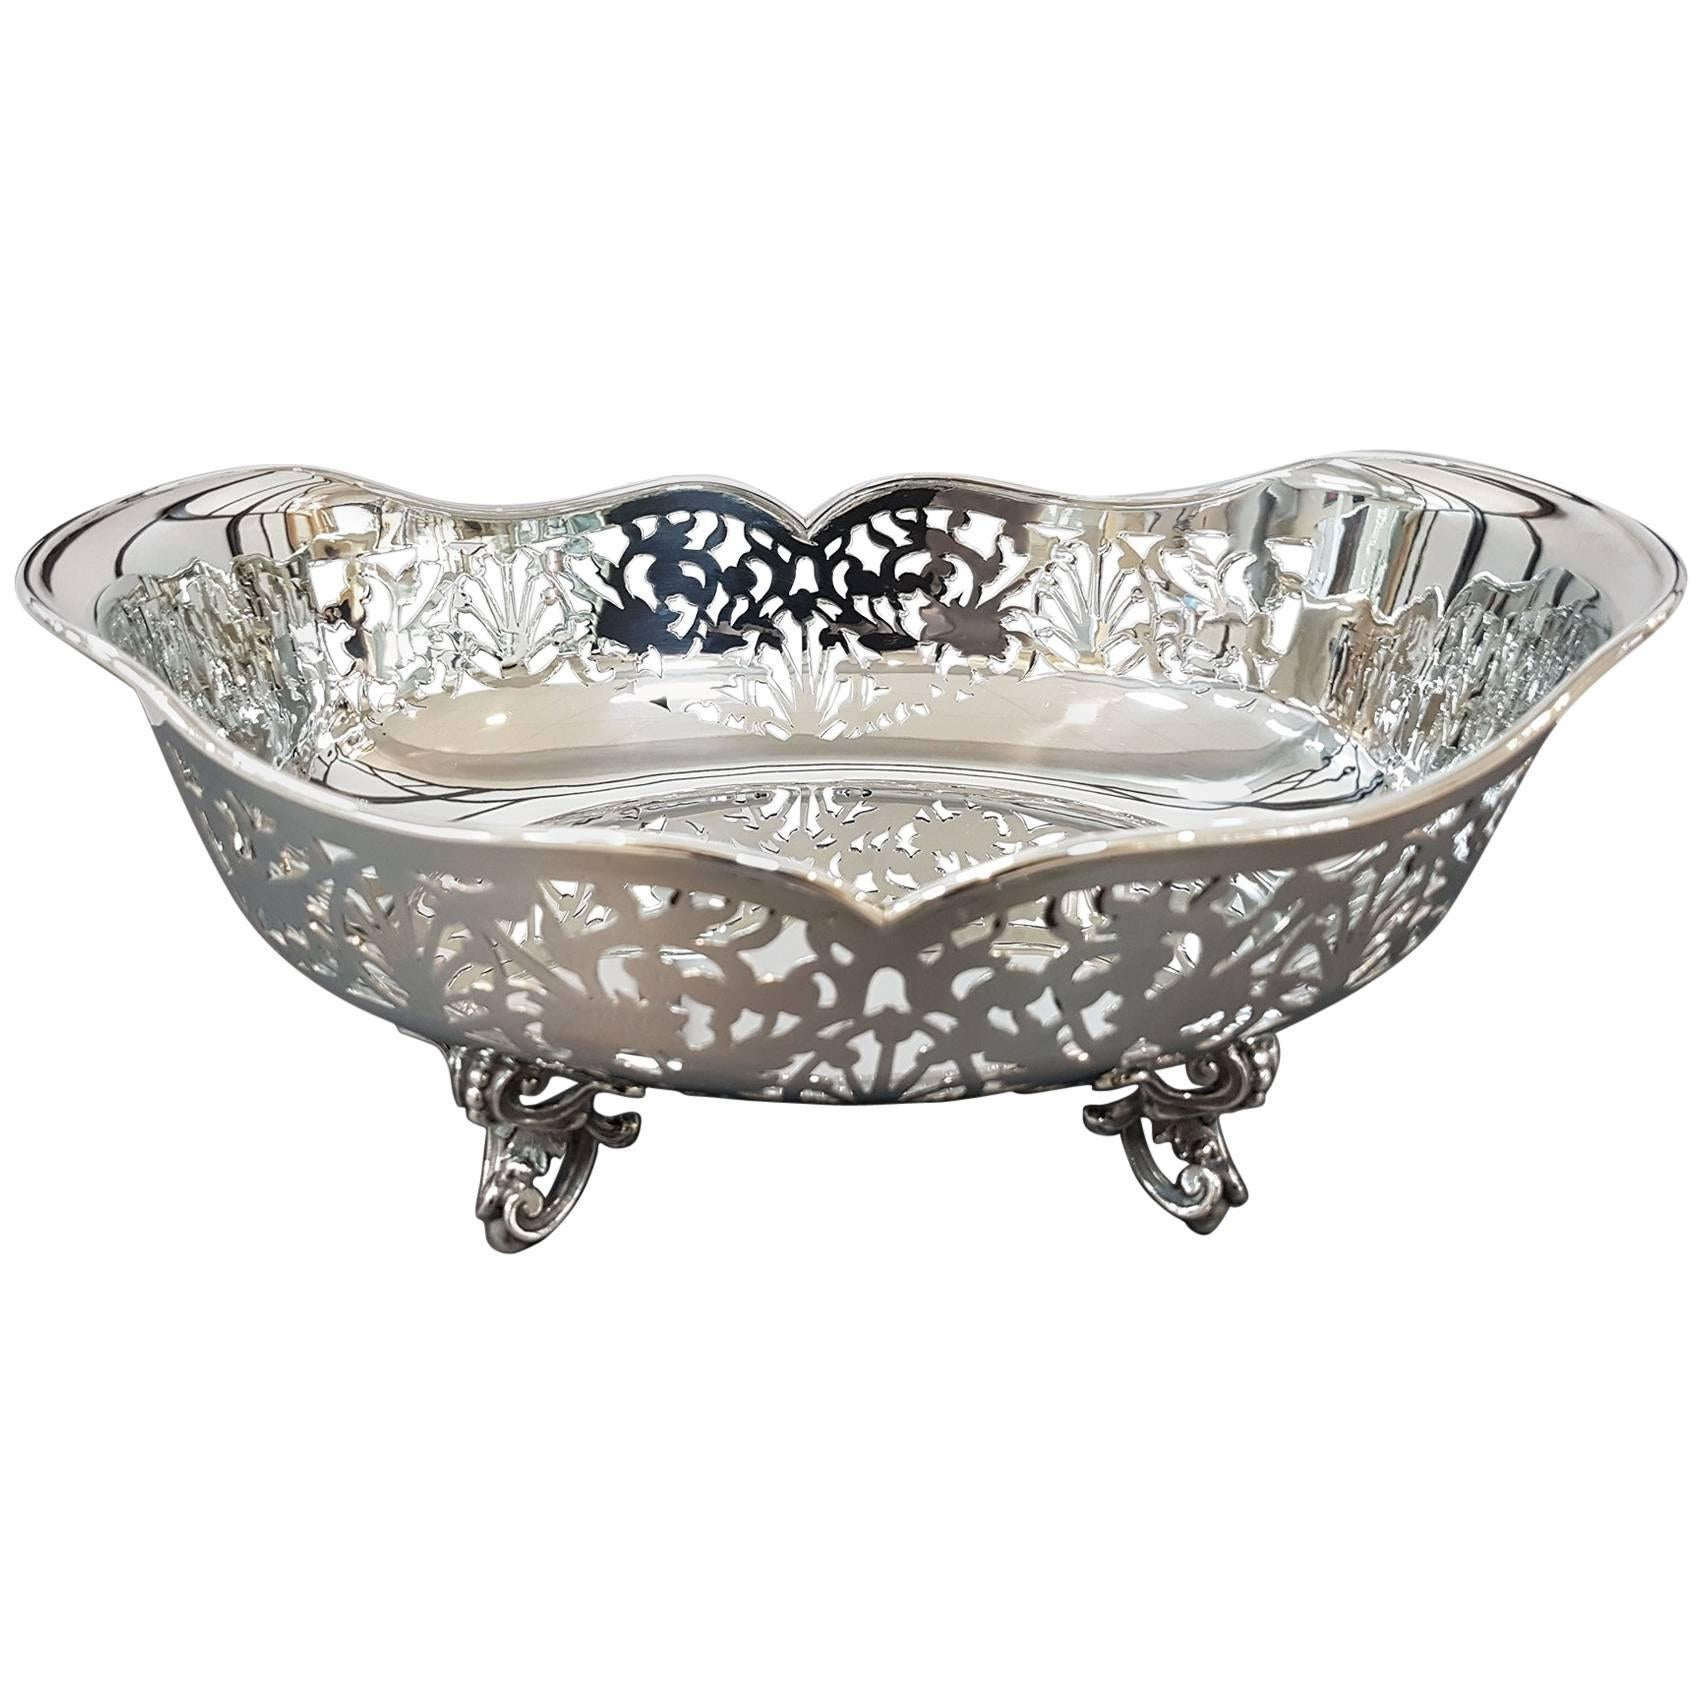 20th Century Pierced Sterling Silver Basket. Handicrafts made in Italy